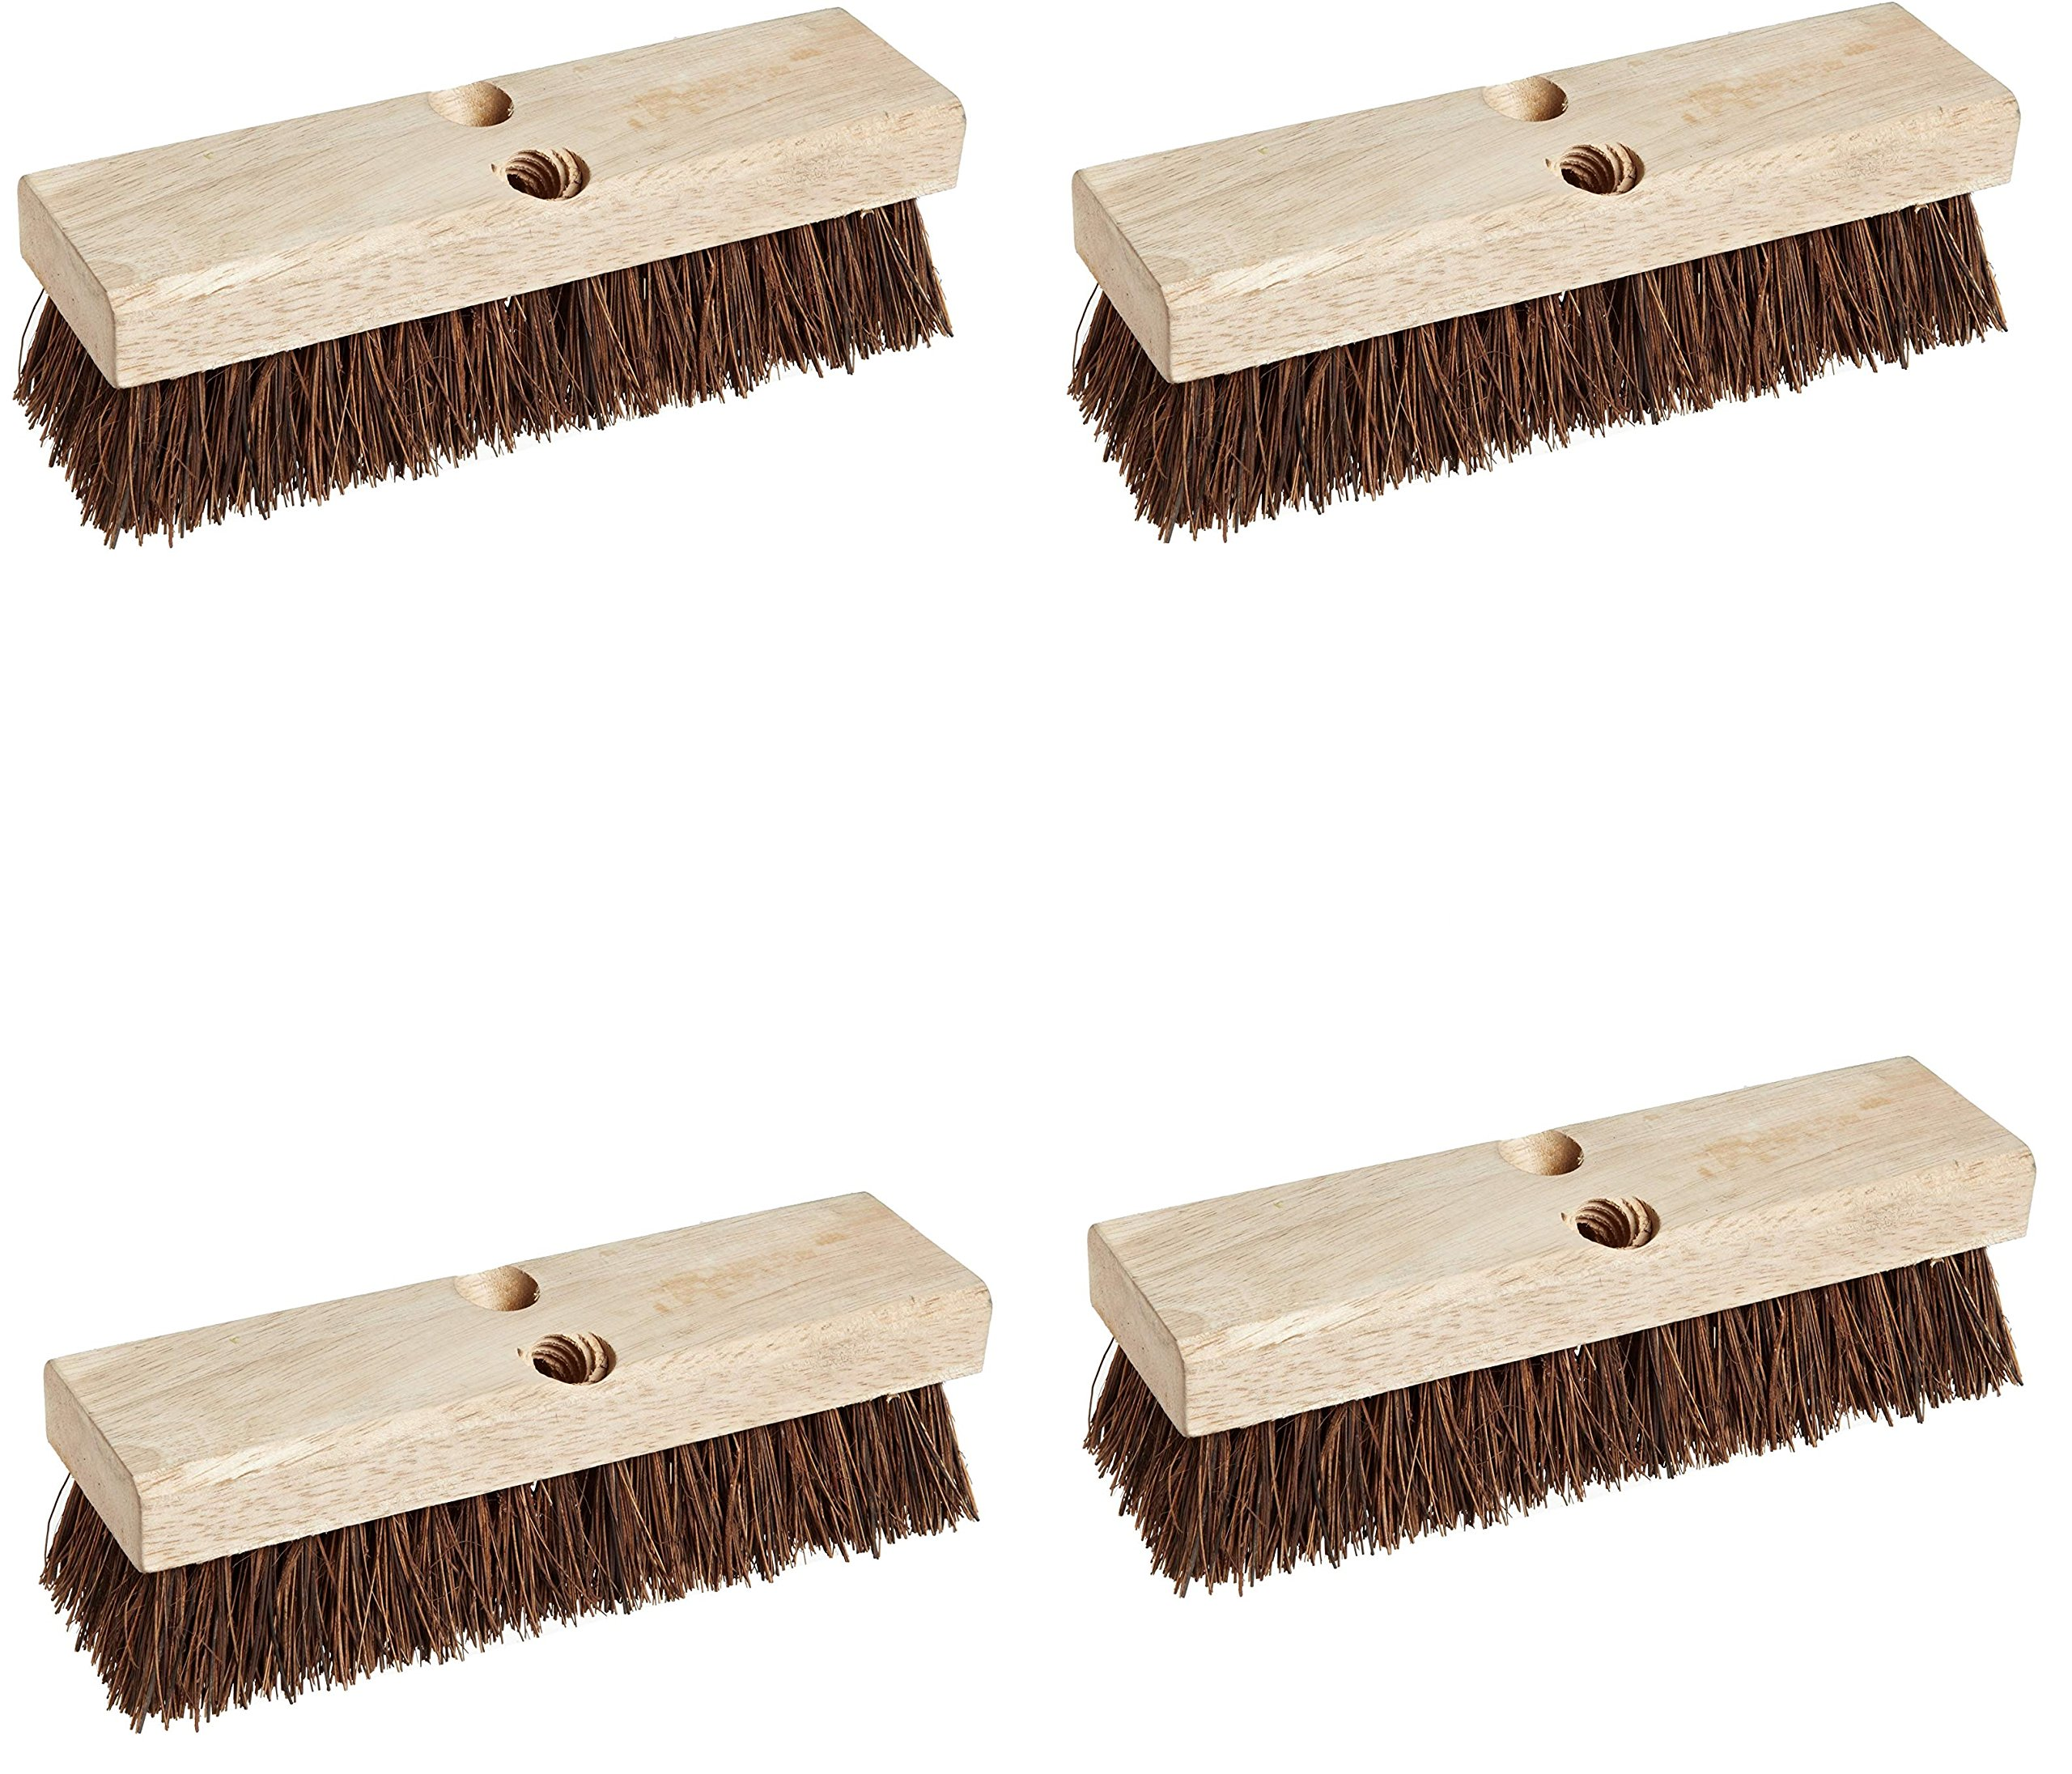 Weiler 44026 Palmyra Fill Deck Scrub Brush with Wood Block, 10'' Overall Length (4 pack)